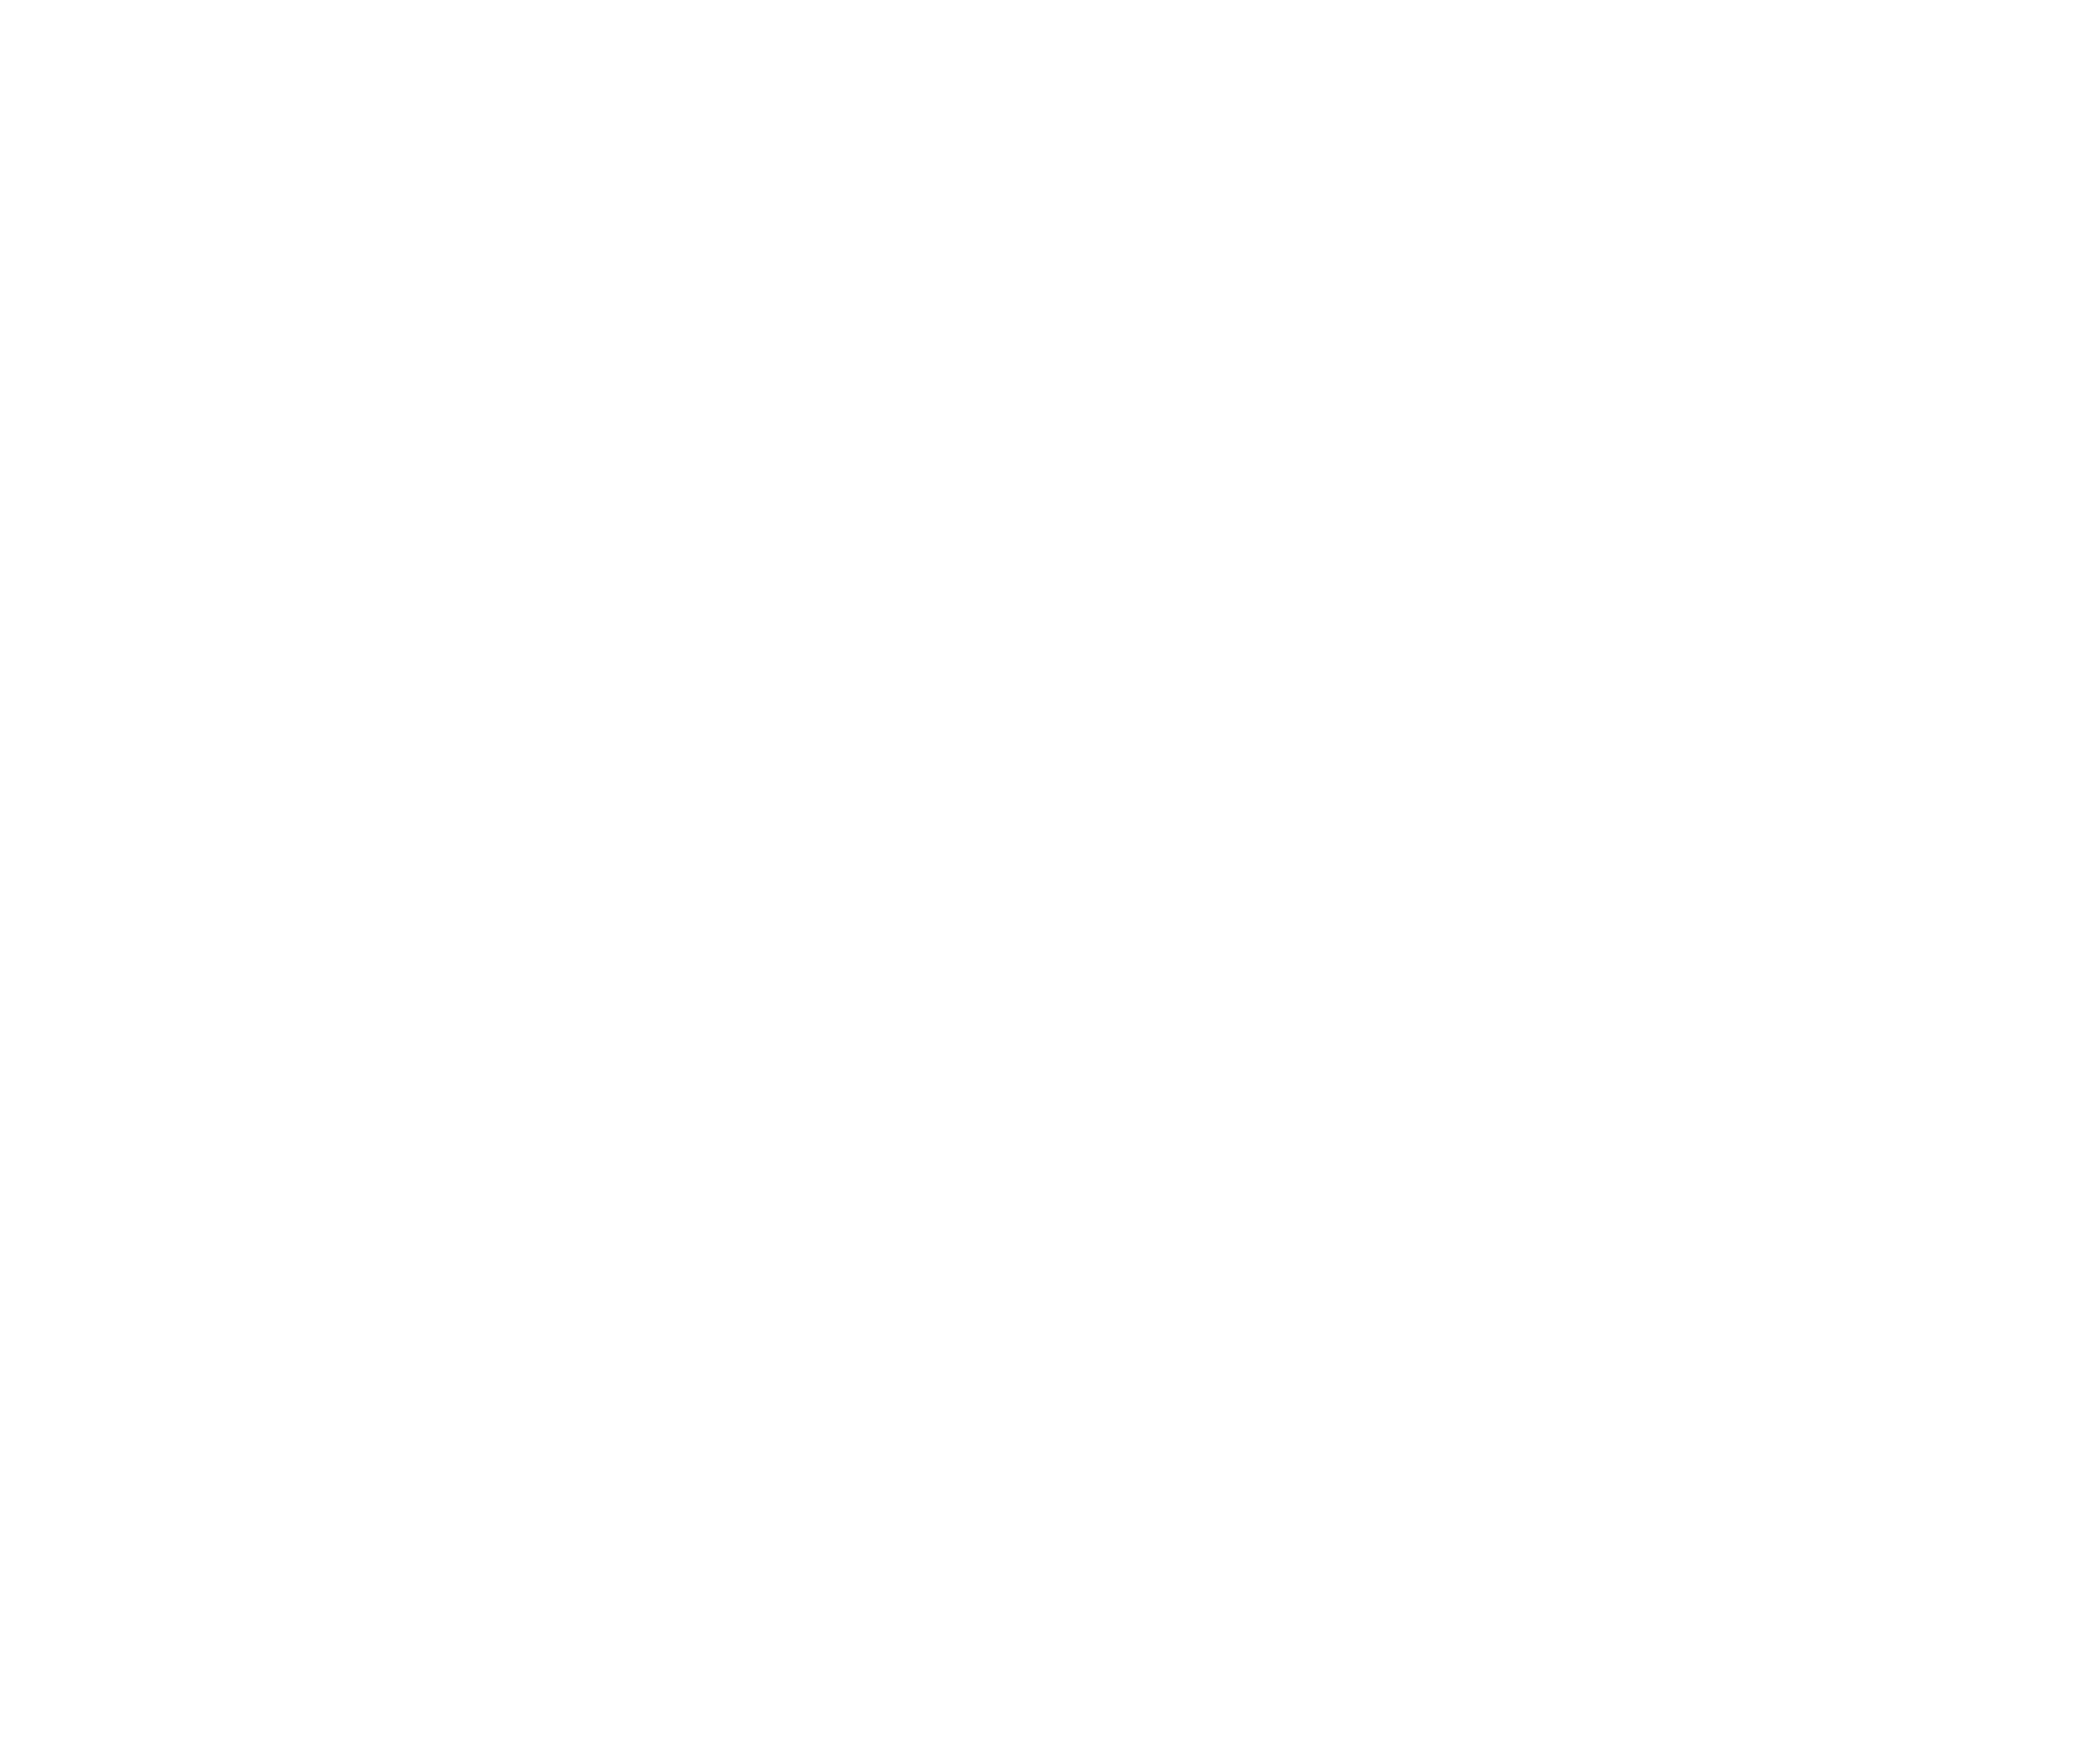 IFS film Festival - Official Selection - Independent Filmmakers Showcase